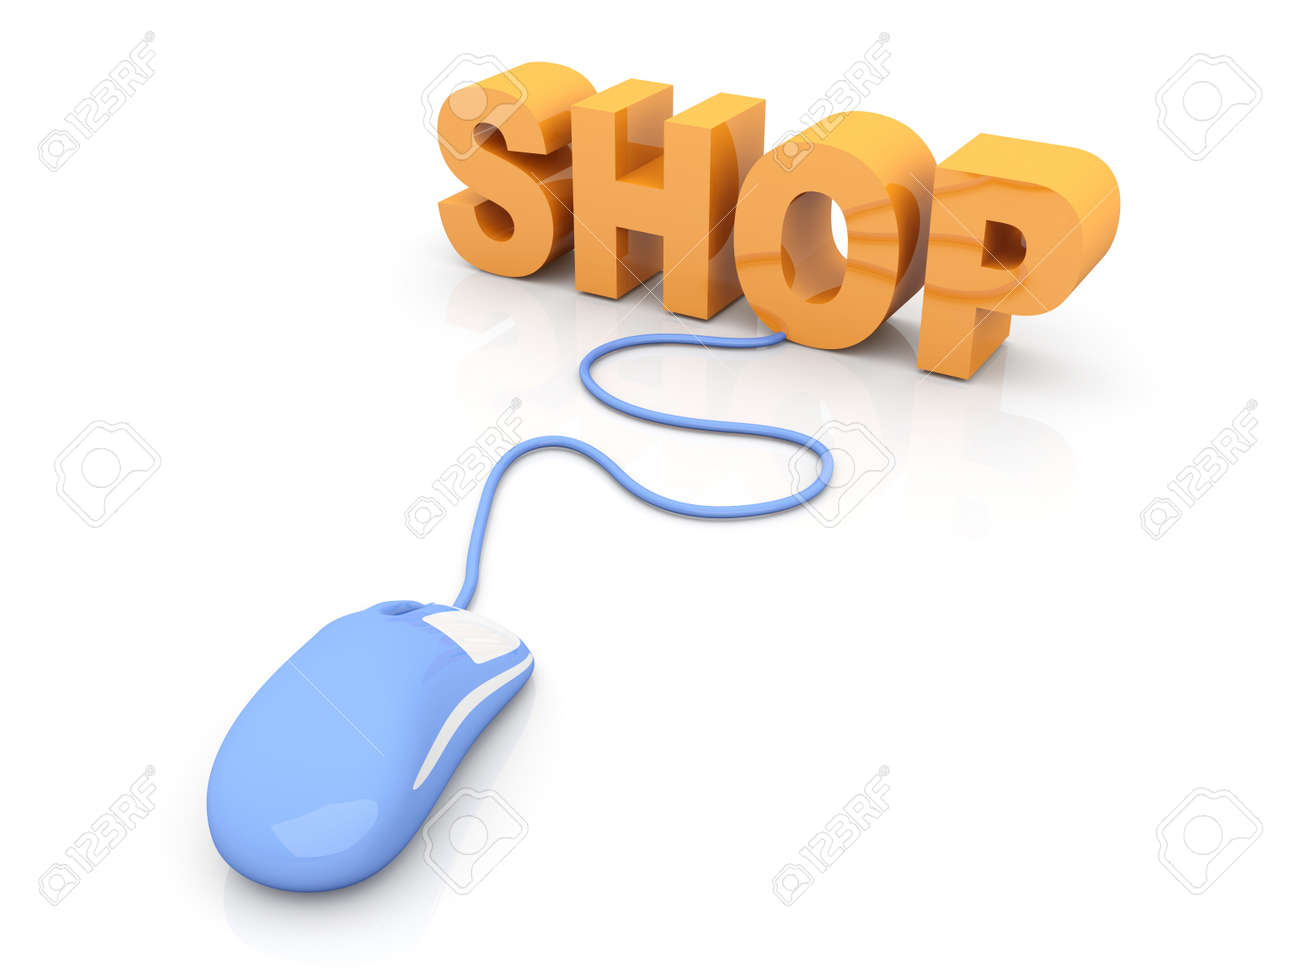 Buy at the Online shop. 3D rendered Illustration. Isolated on white. Stock Photo - 17322940